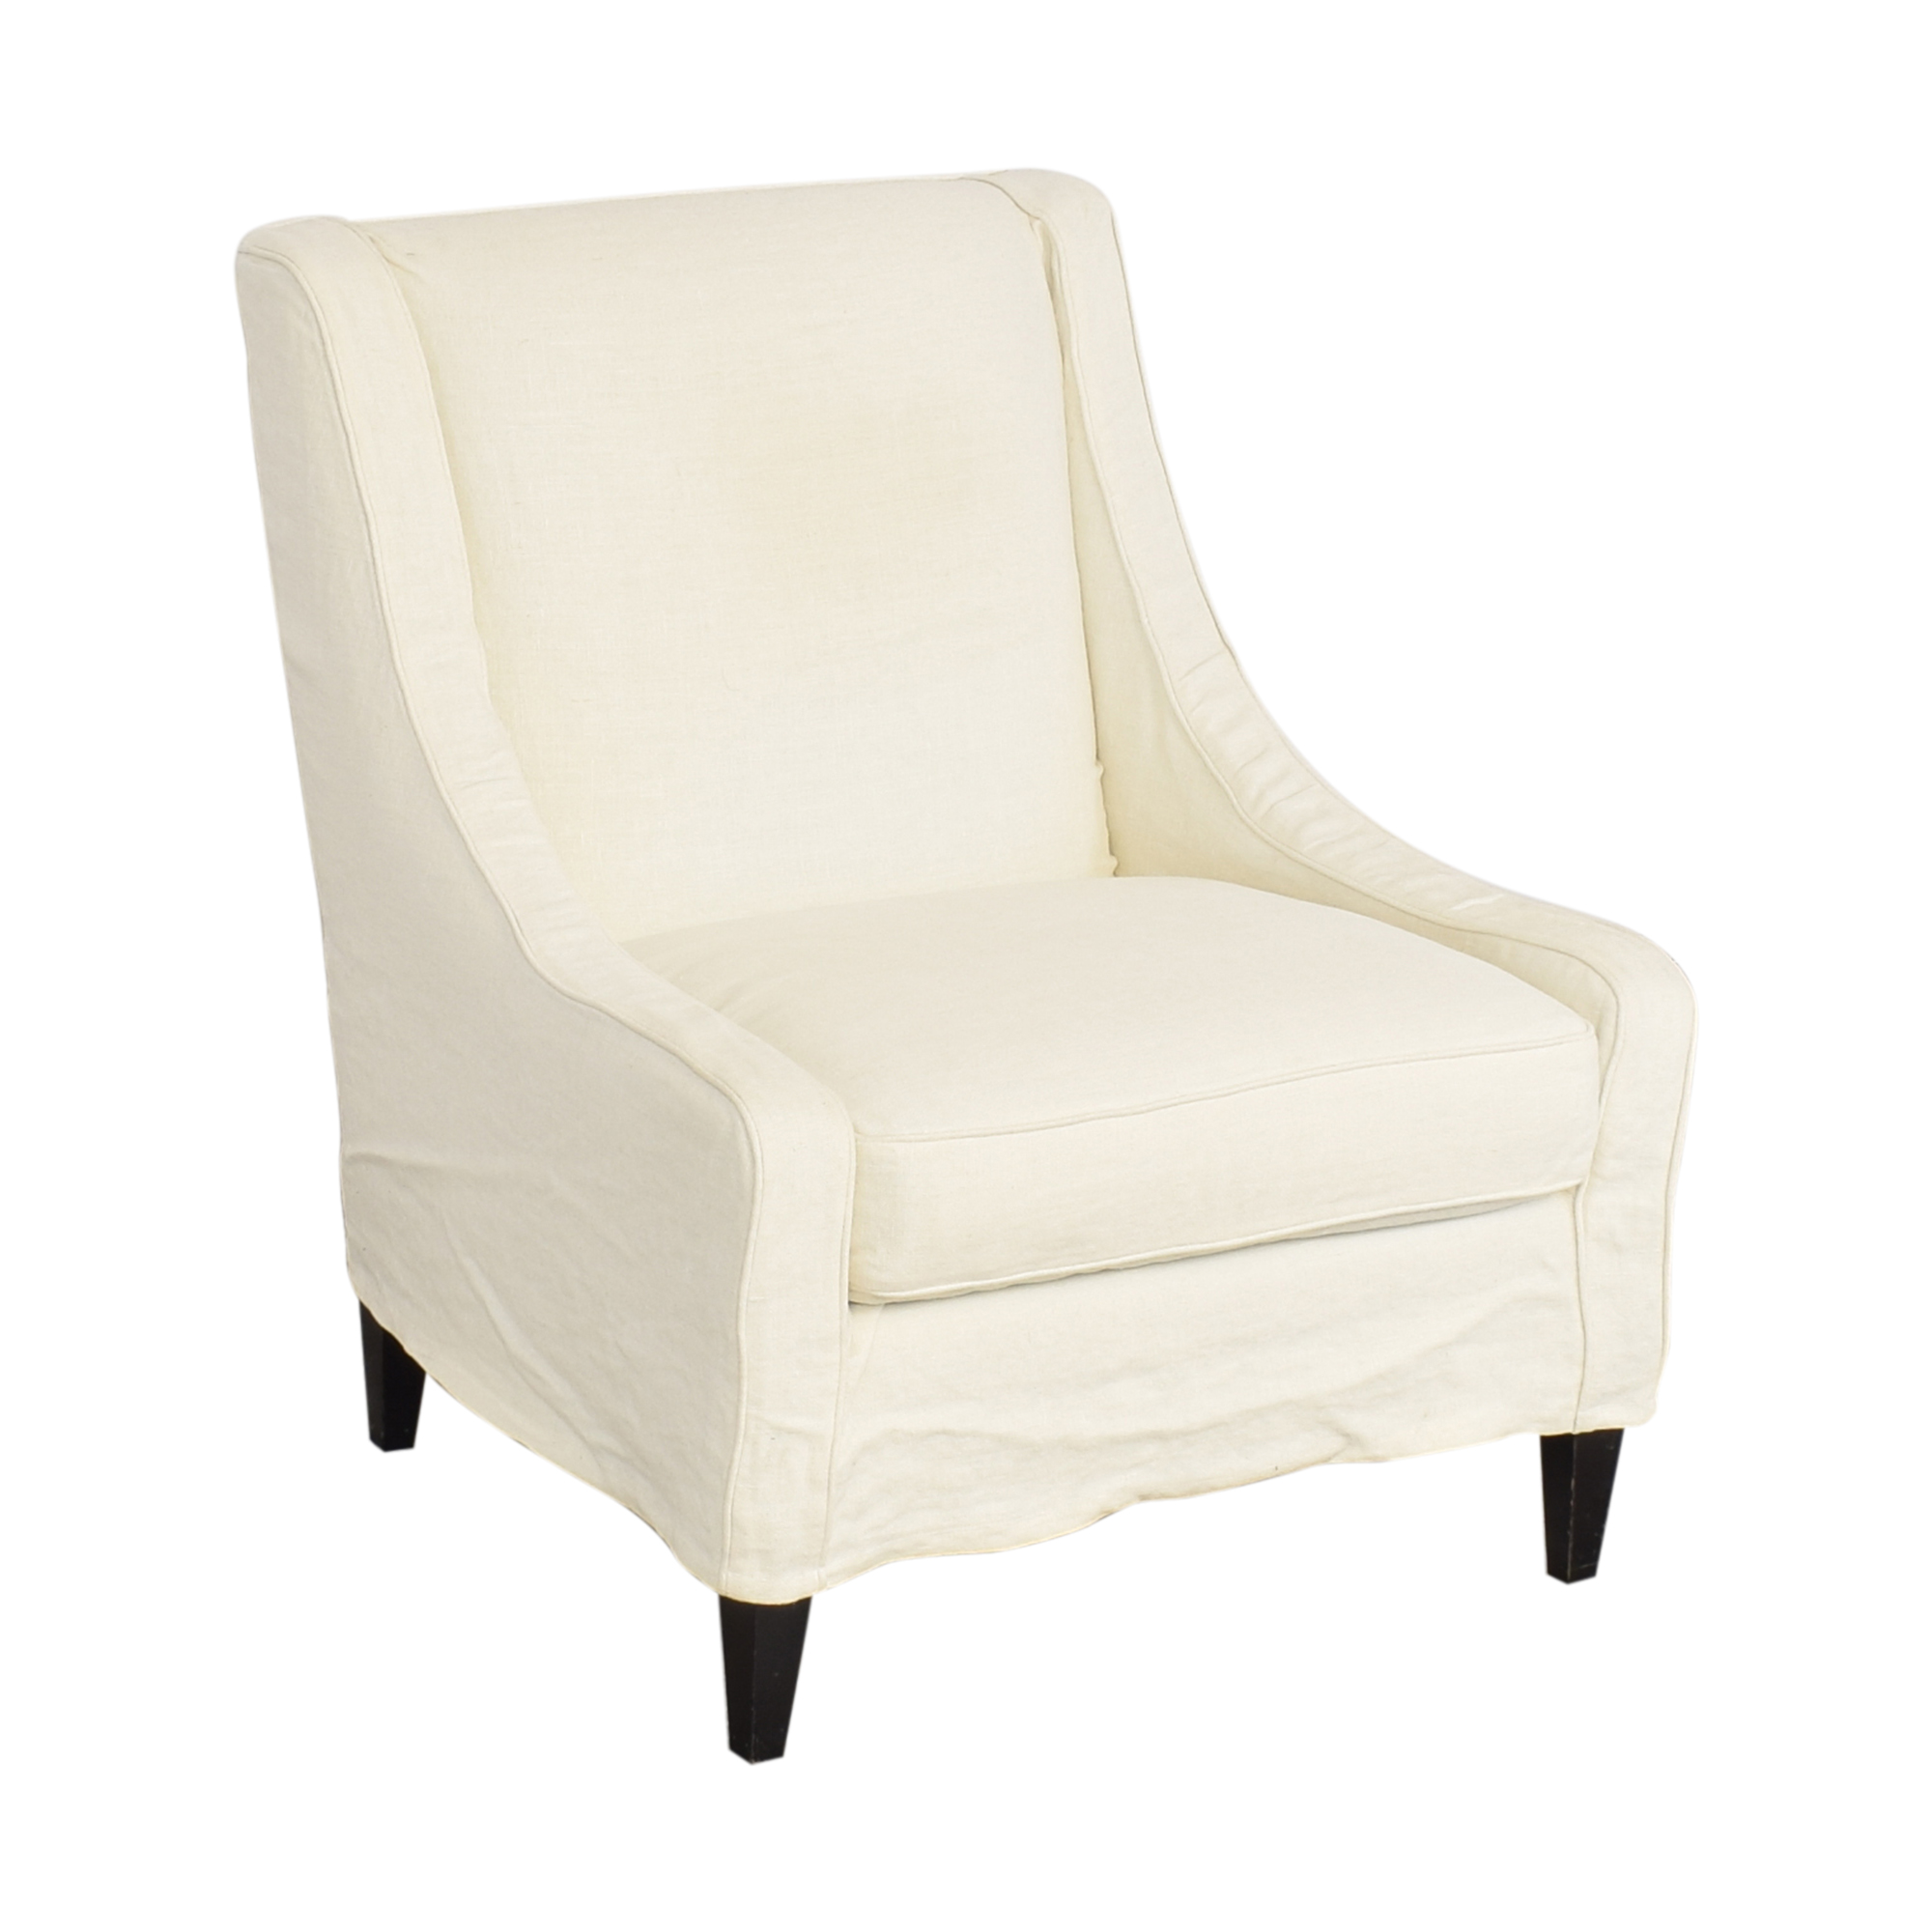 shop Crate & Barrel Slipcovered Accent Chair Crate & Barrel